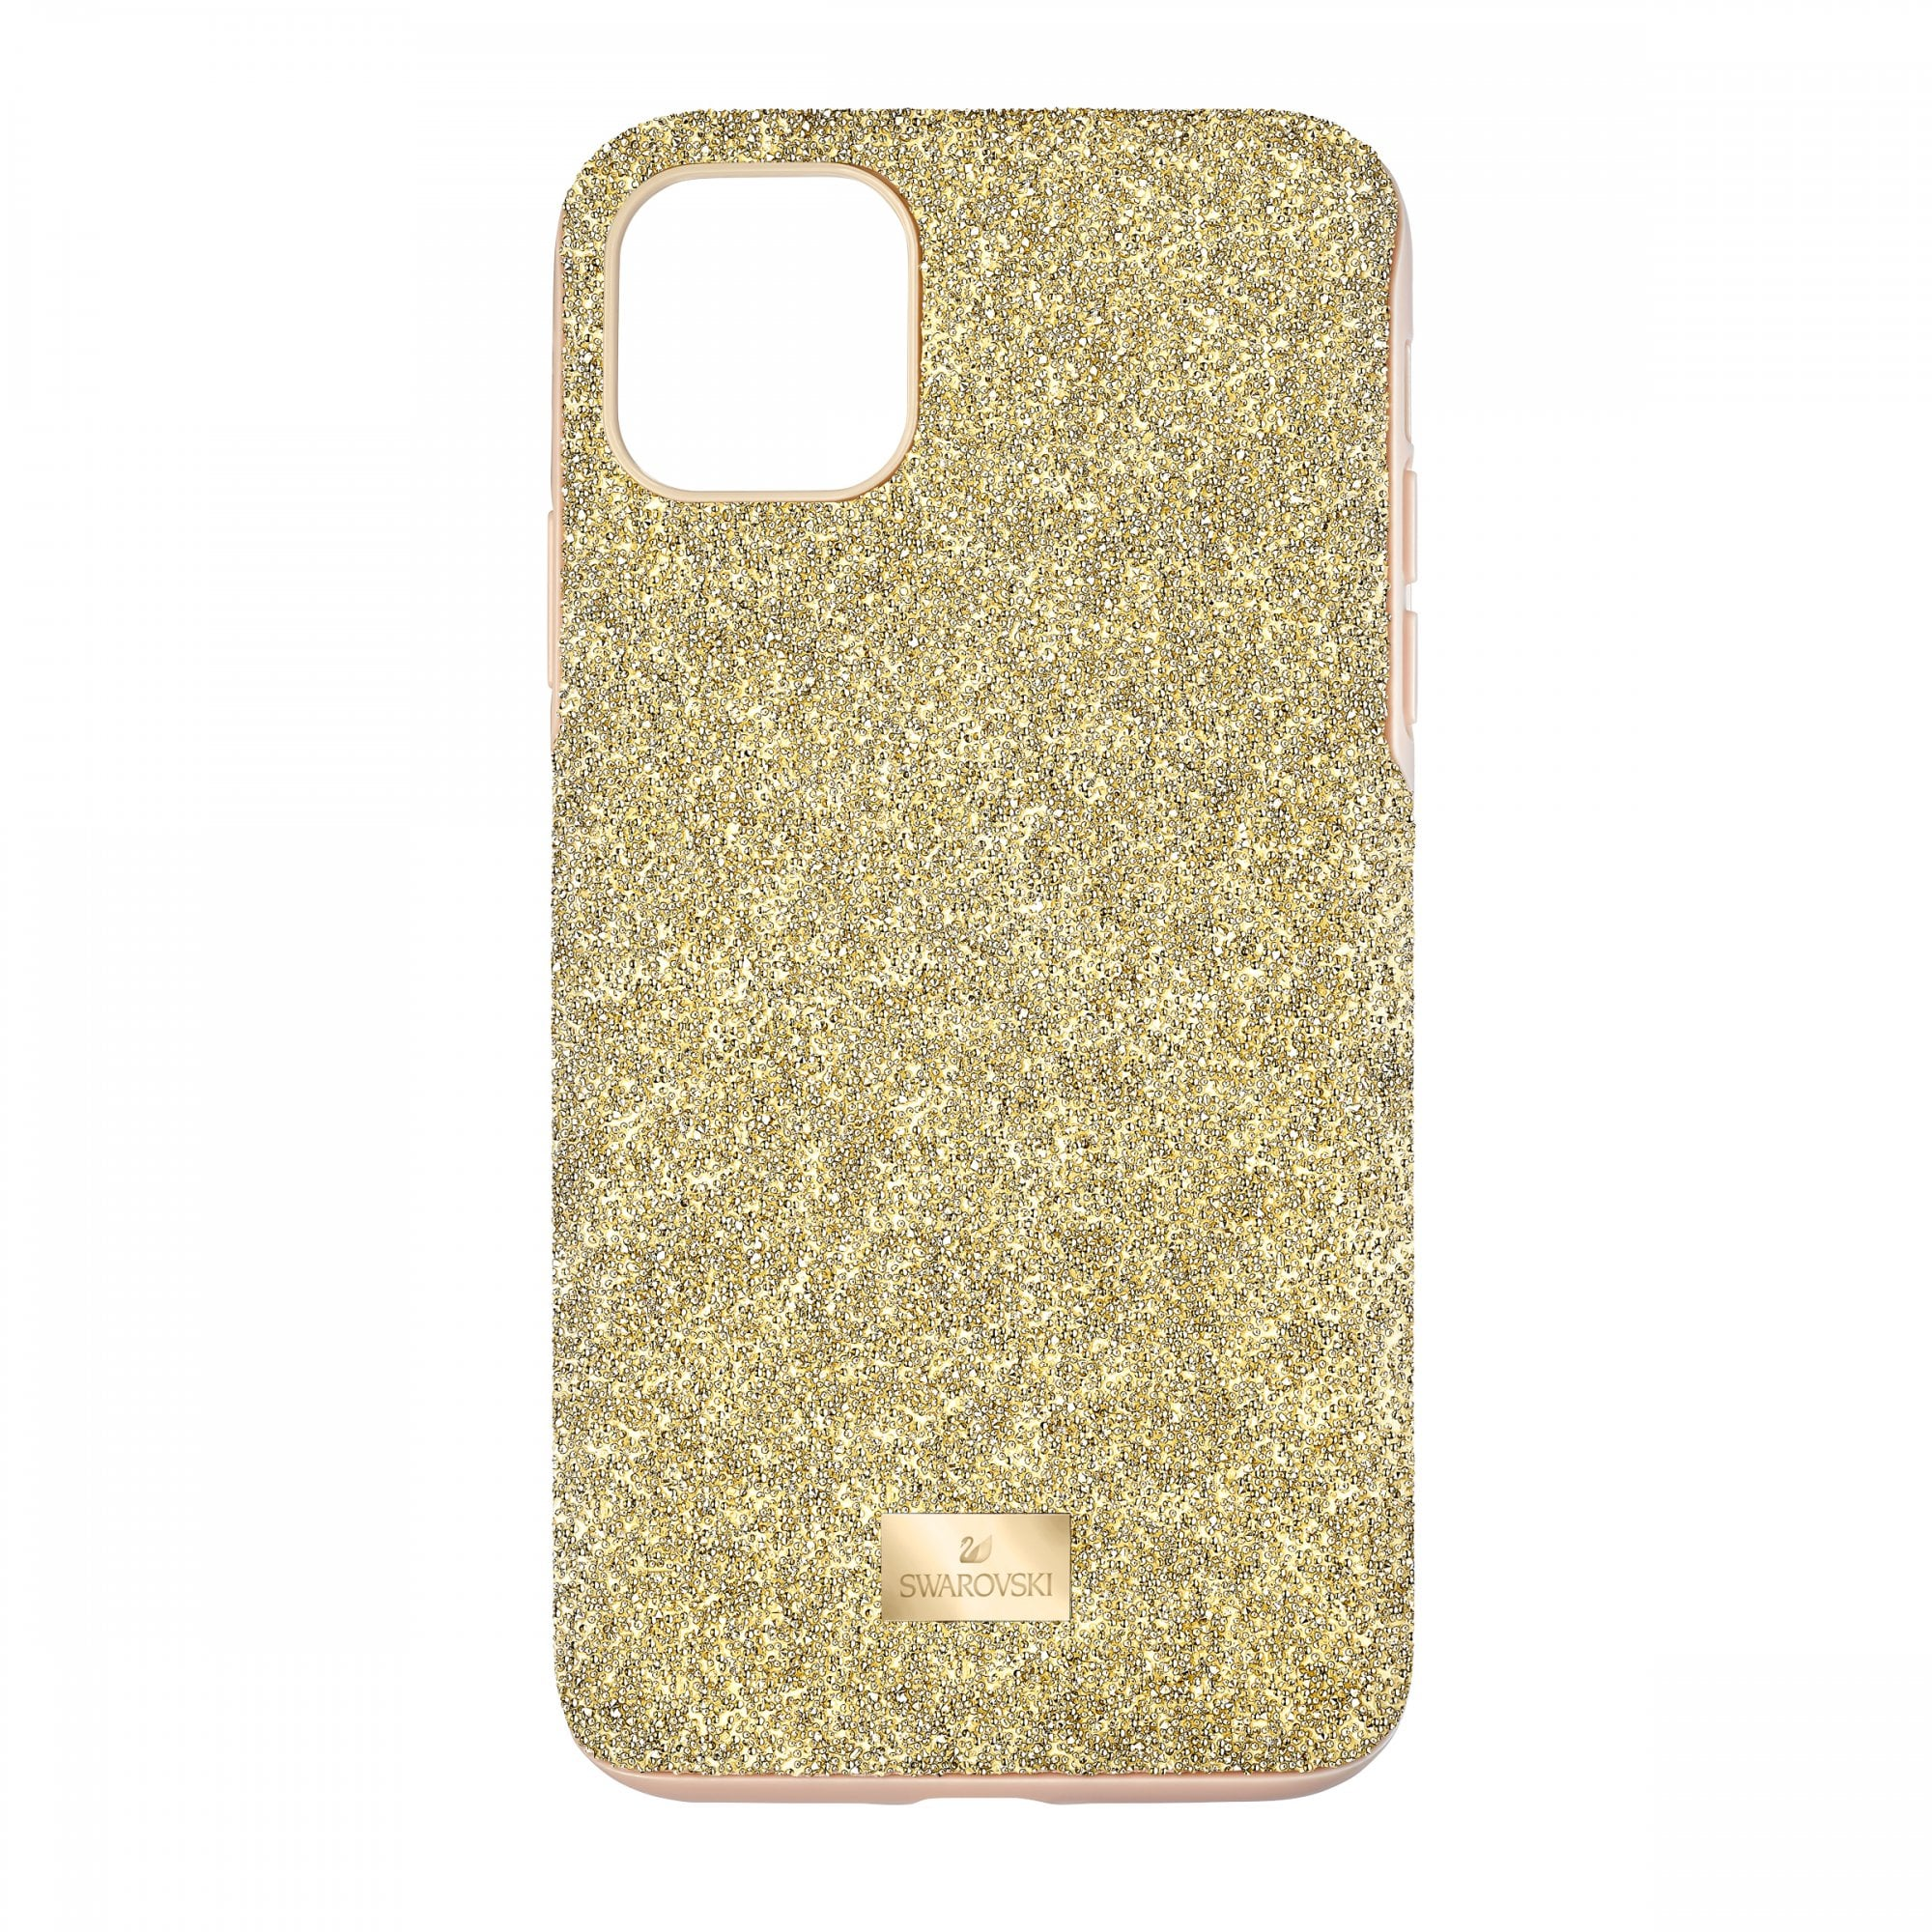 iPhone 7 Cover  Promotional iPhone case  EverythingBranded UK